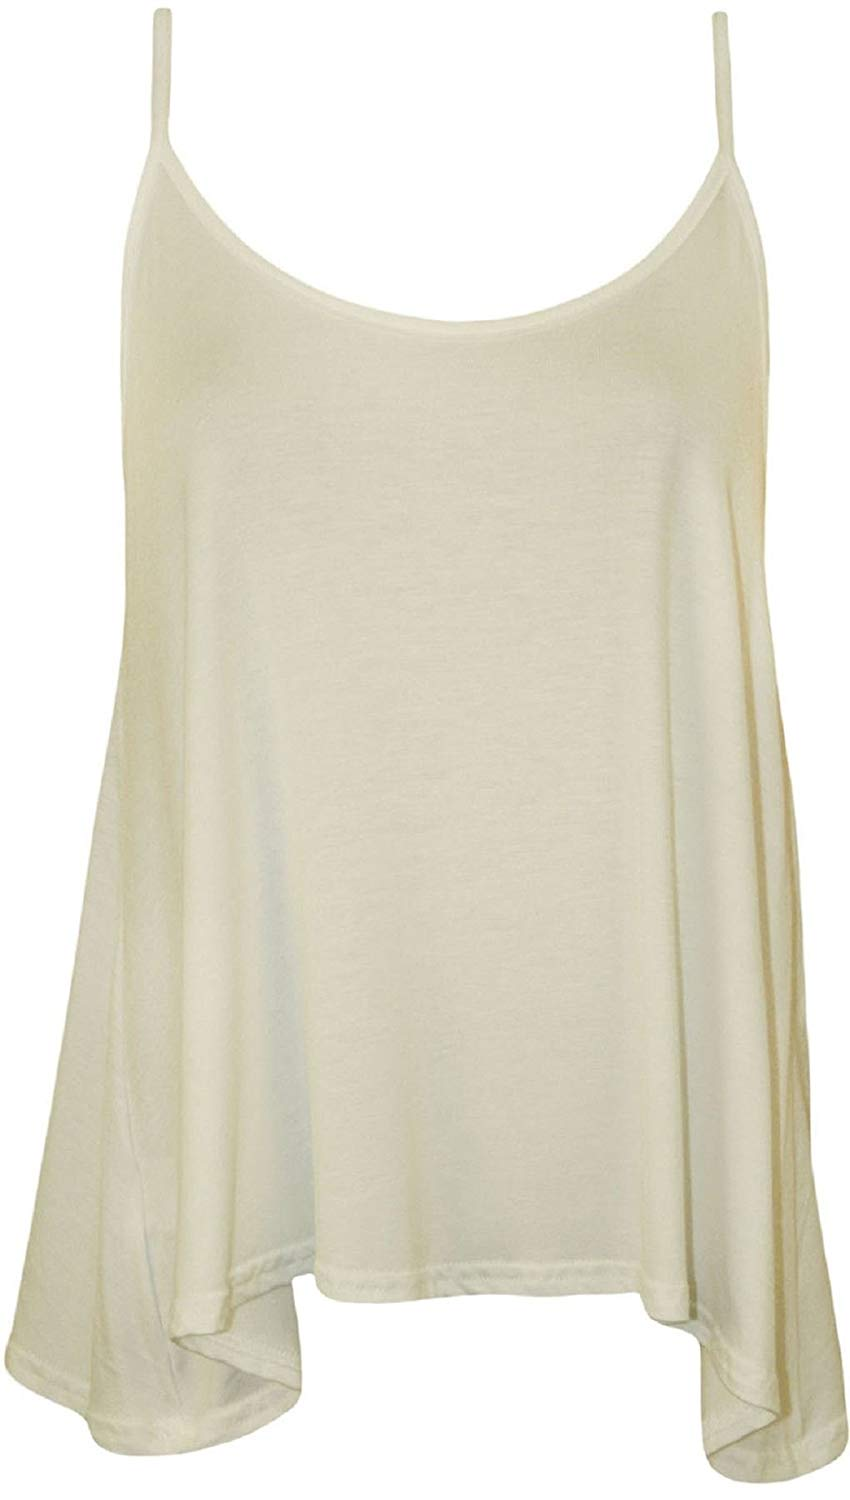 Rimi Hanger Womens Plain Strappy Camisole Swing Vest Top Ladies Sleeveless Flared Fancy Top S/3XL